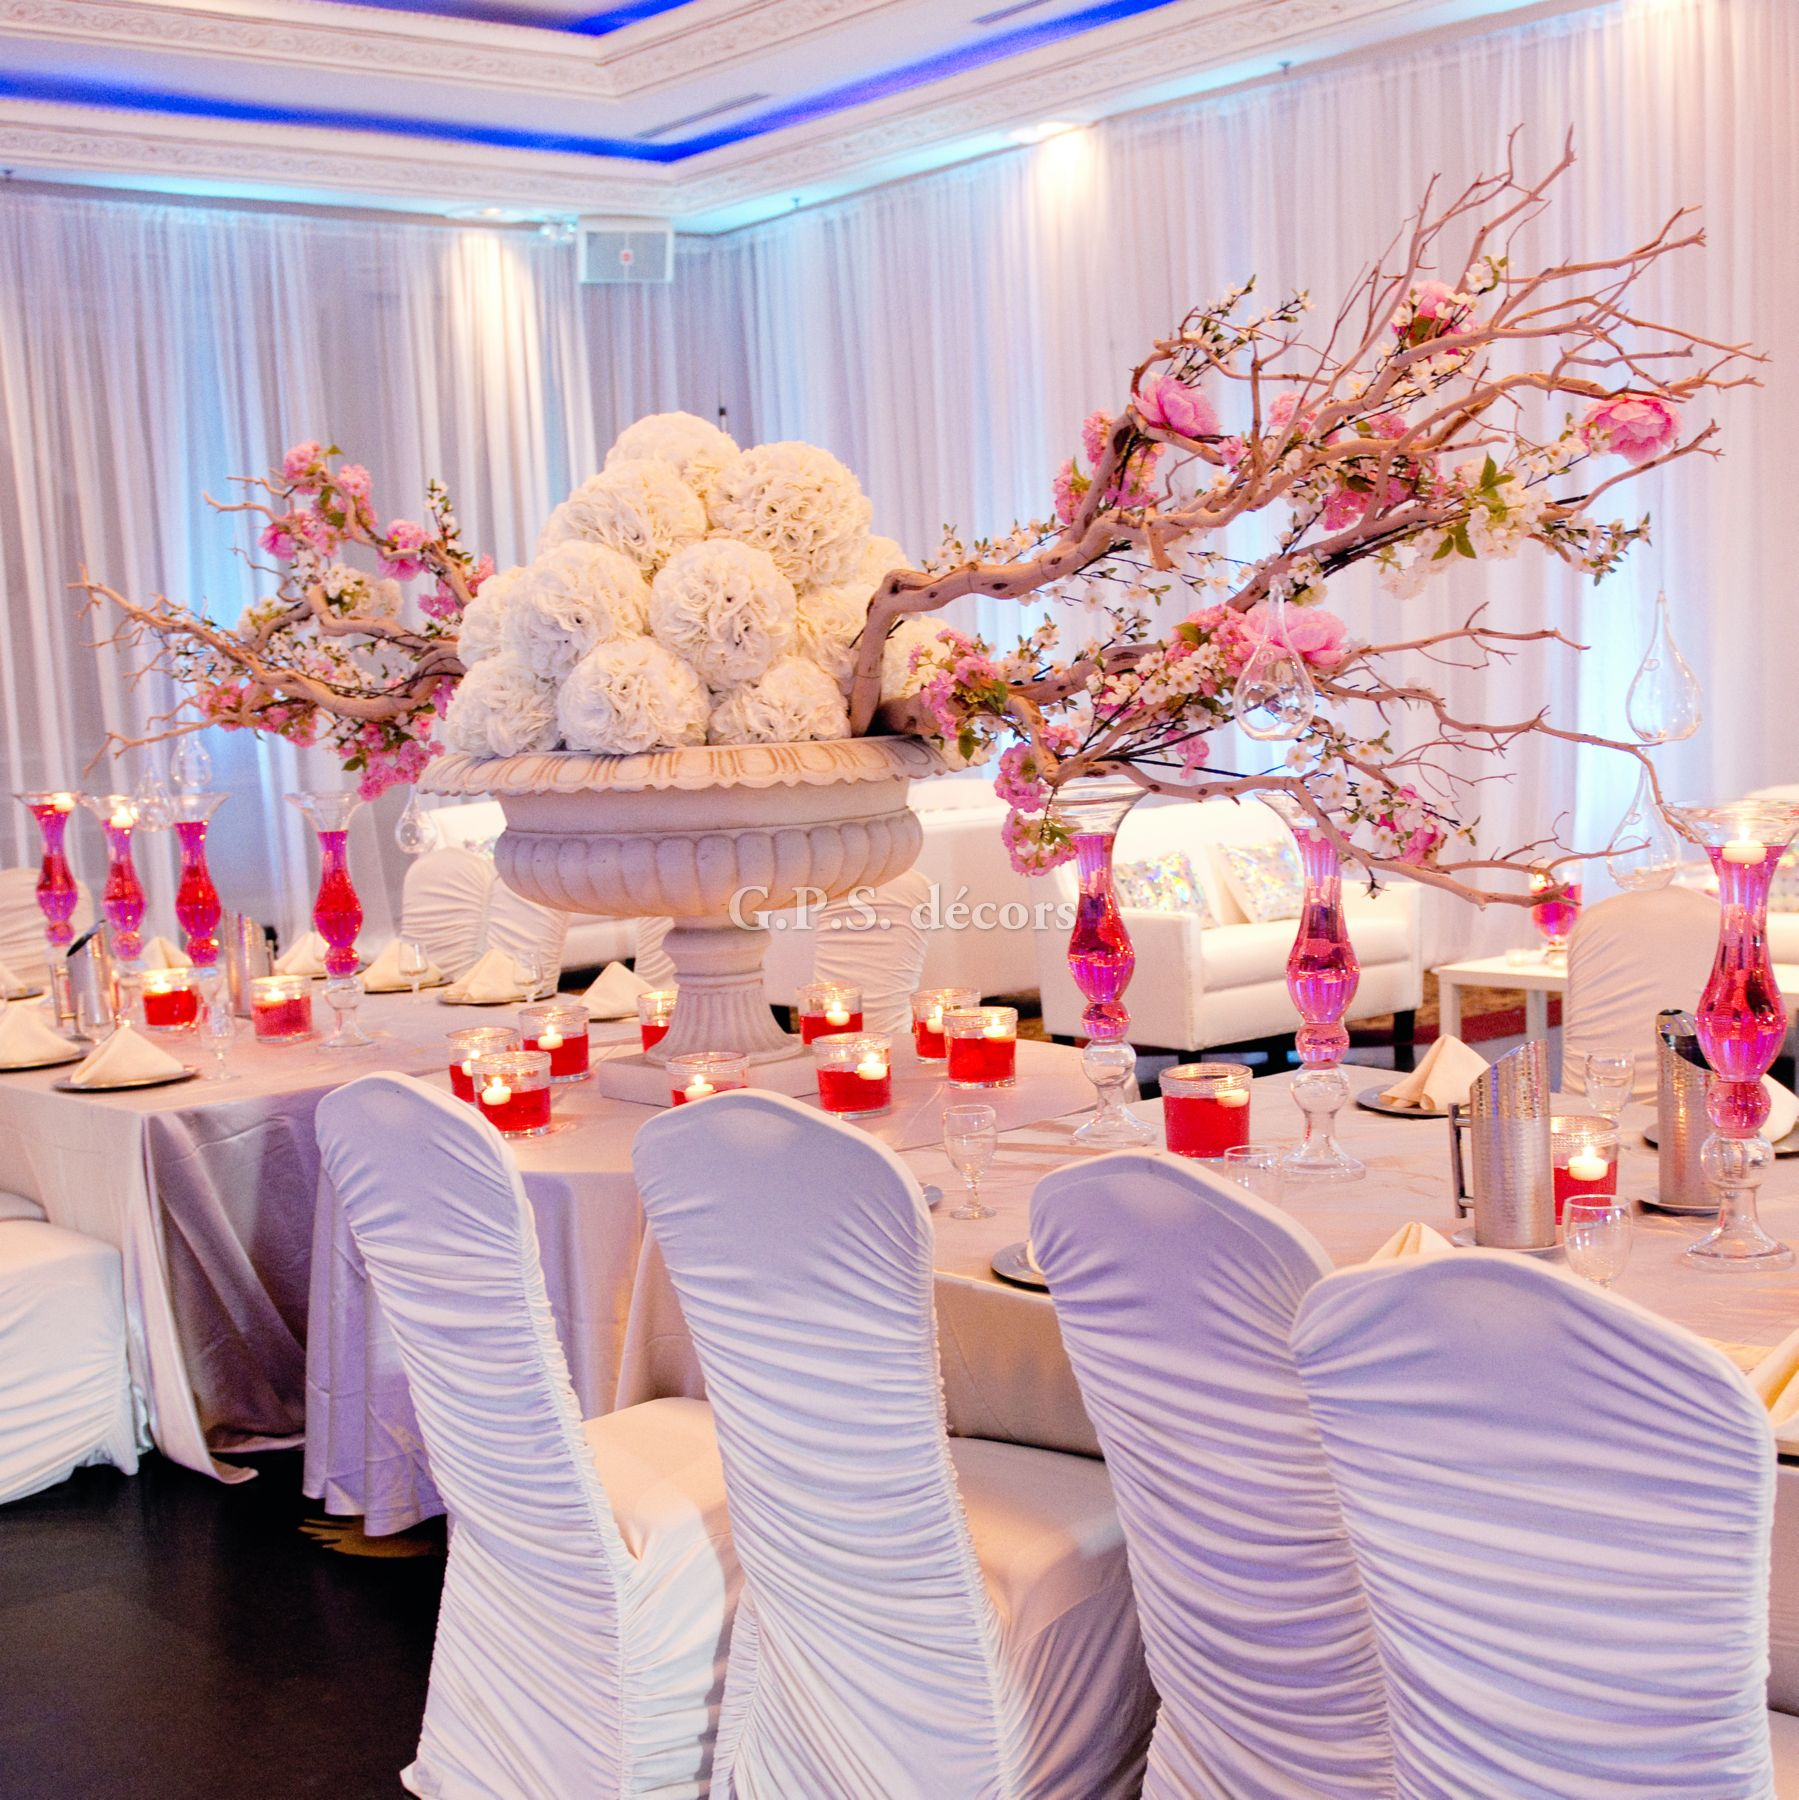 Event design | GPS Decors